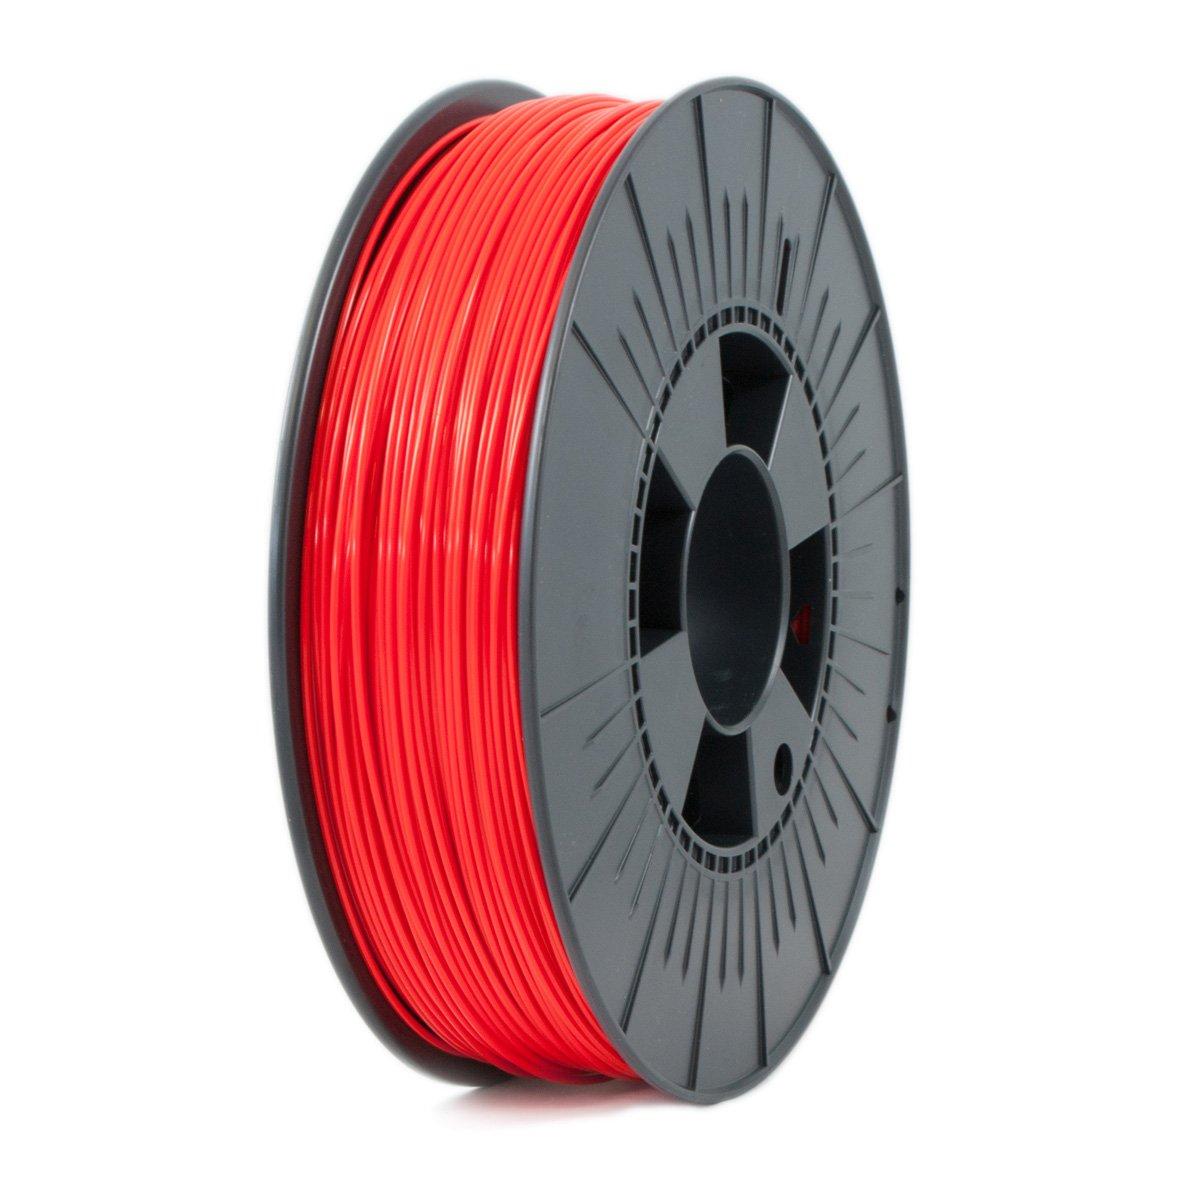 Ice Filaments ICEFIL1ABS027 Filamento ABS, 1,75 mm, 0,75 kg, Rojo